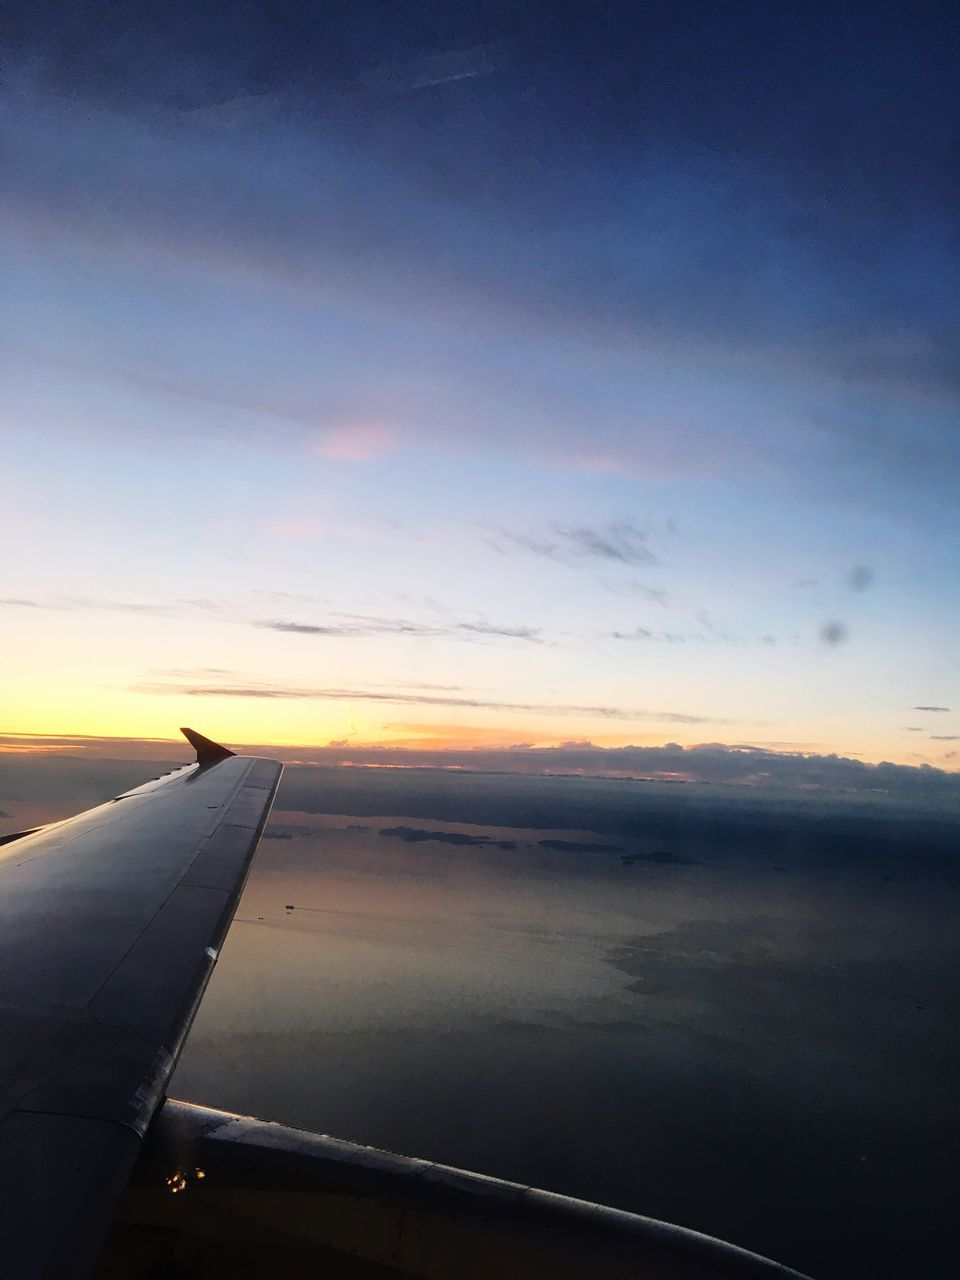 sunset, airplane, transportation, journey, travel, sky, airplane wing, air vehicle, nature, mode of transport, aerial view, cloud - sky, beauty in nature, scenics, no people, aircraft wing, tranquil scene, flying, outdoors, close-up, day